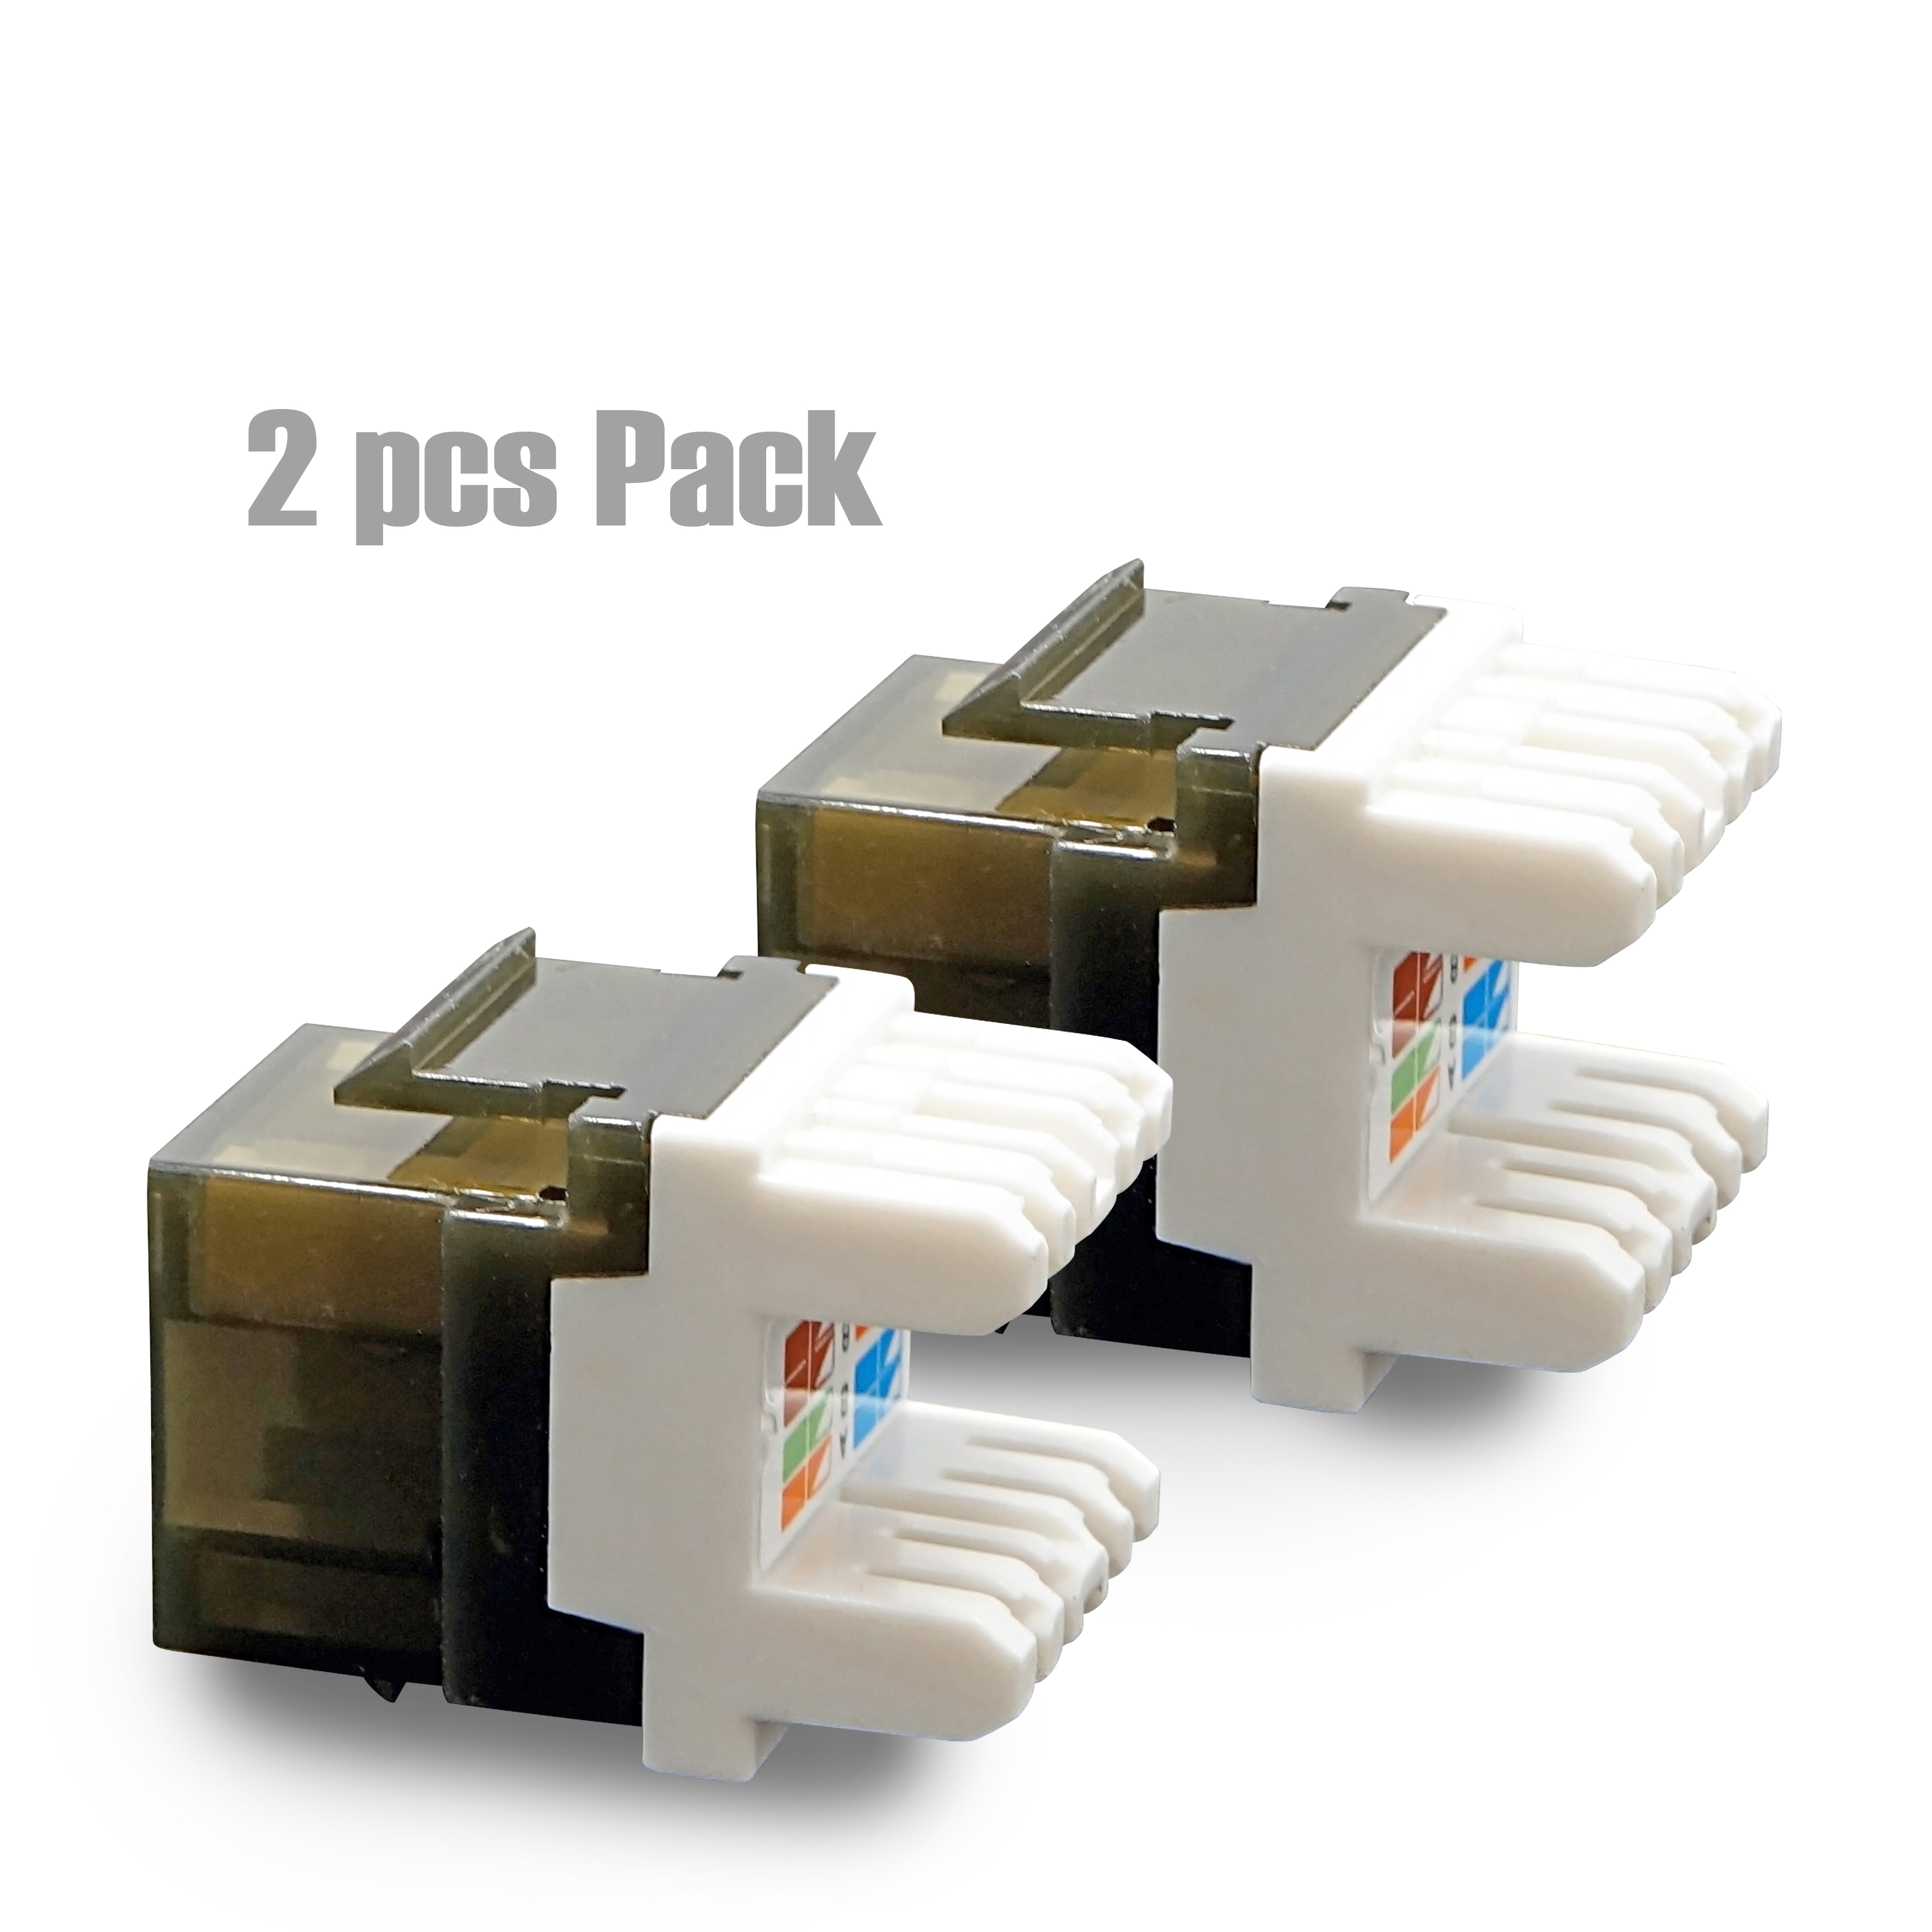 CyberTech UTP Cat.6A/Cat.6/Cat.5e Keystone Jack with LED (2 Pack)